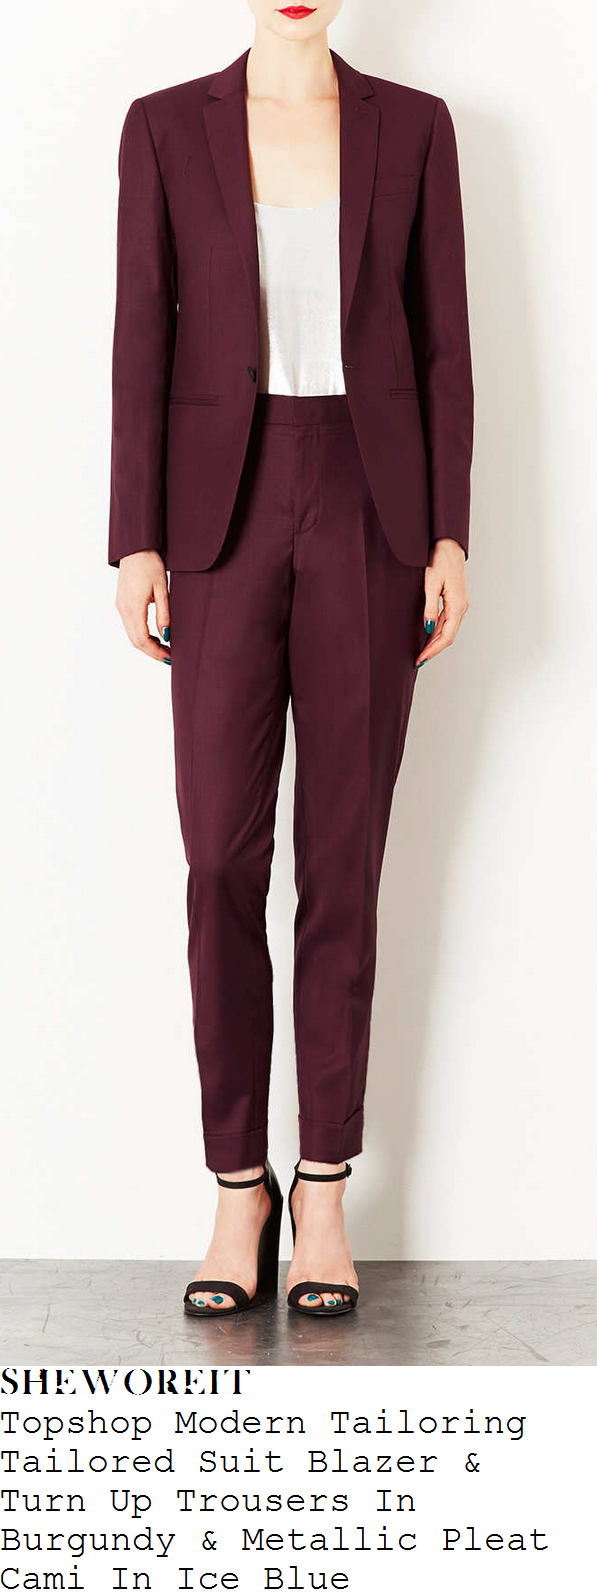 caroline-flack-burgundy-purple-suit-x-factor